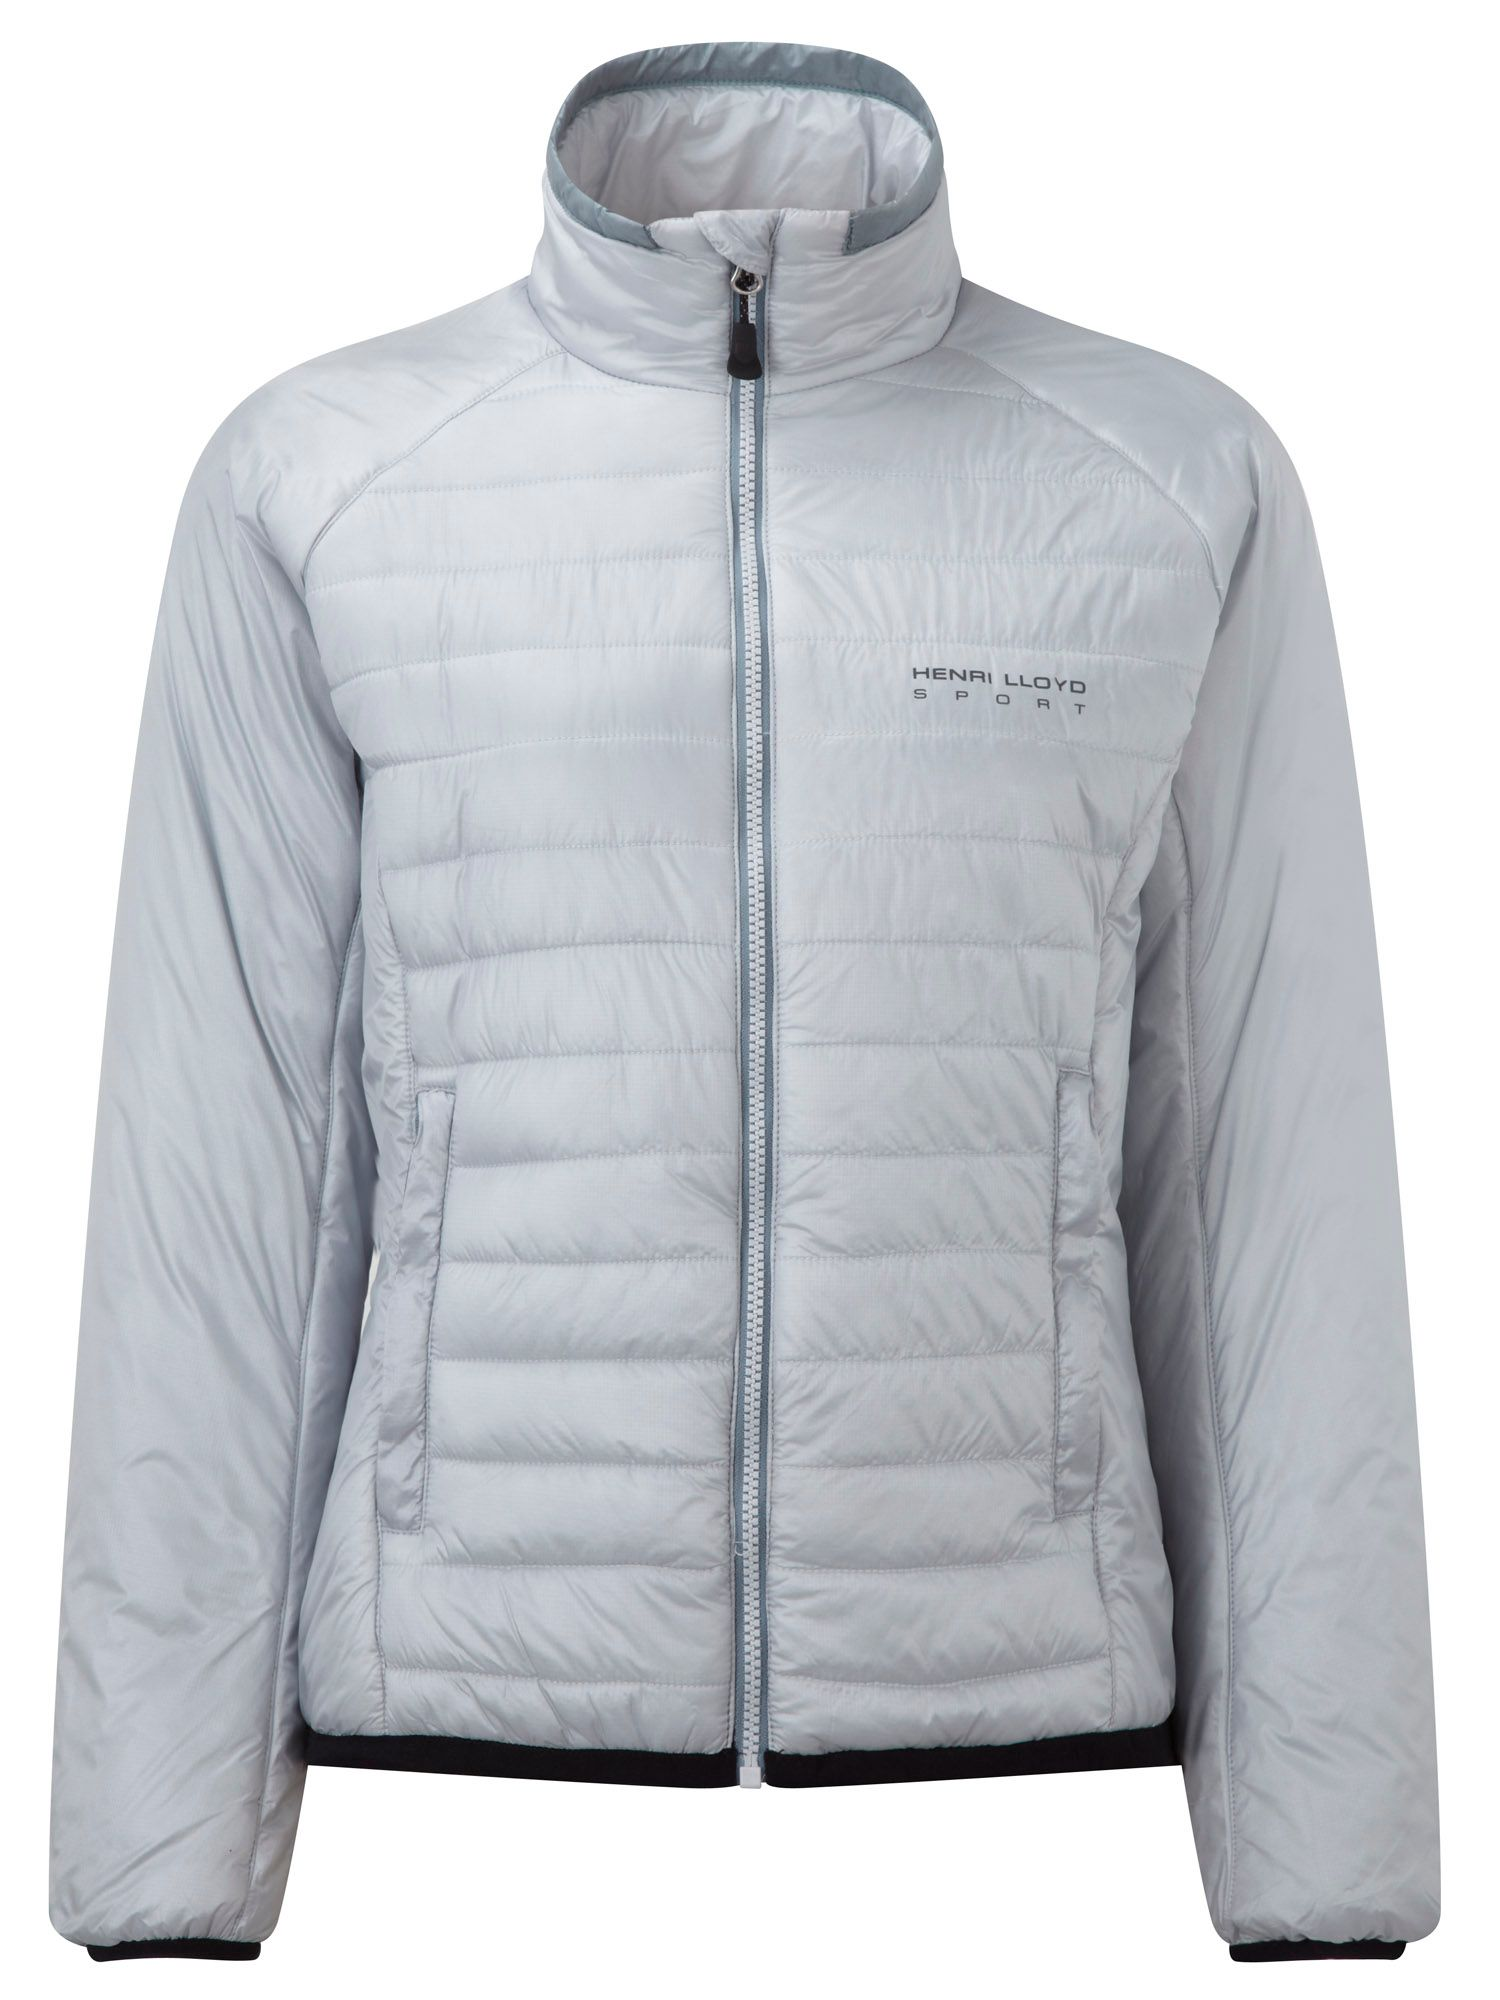 Henri Lloyd Henri Lloyd Celsius Jacket, Grey